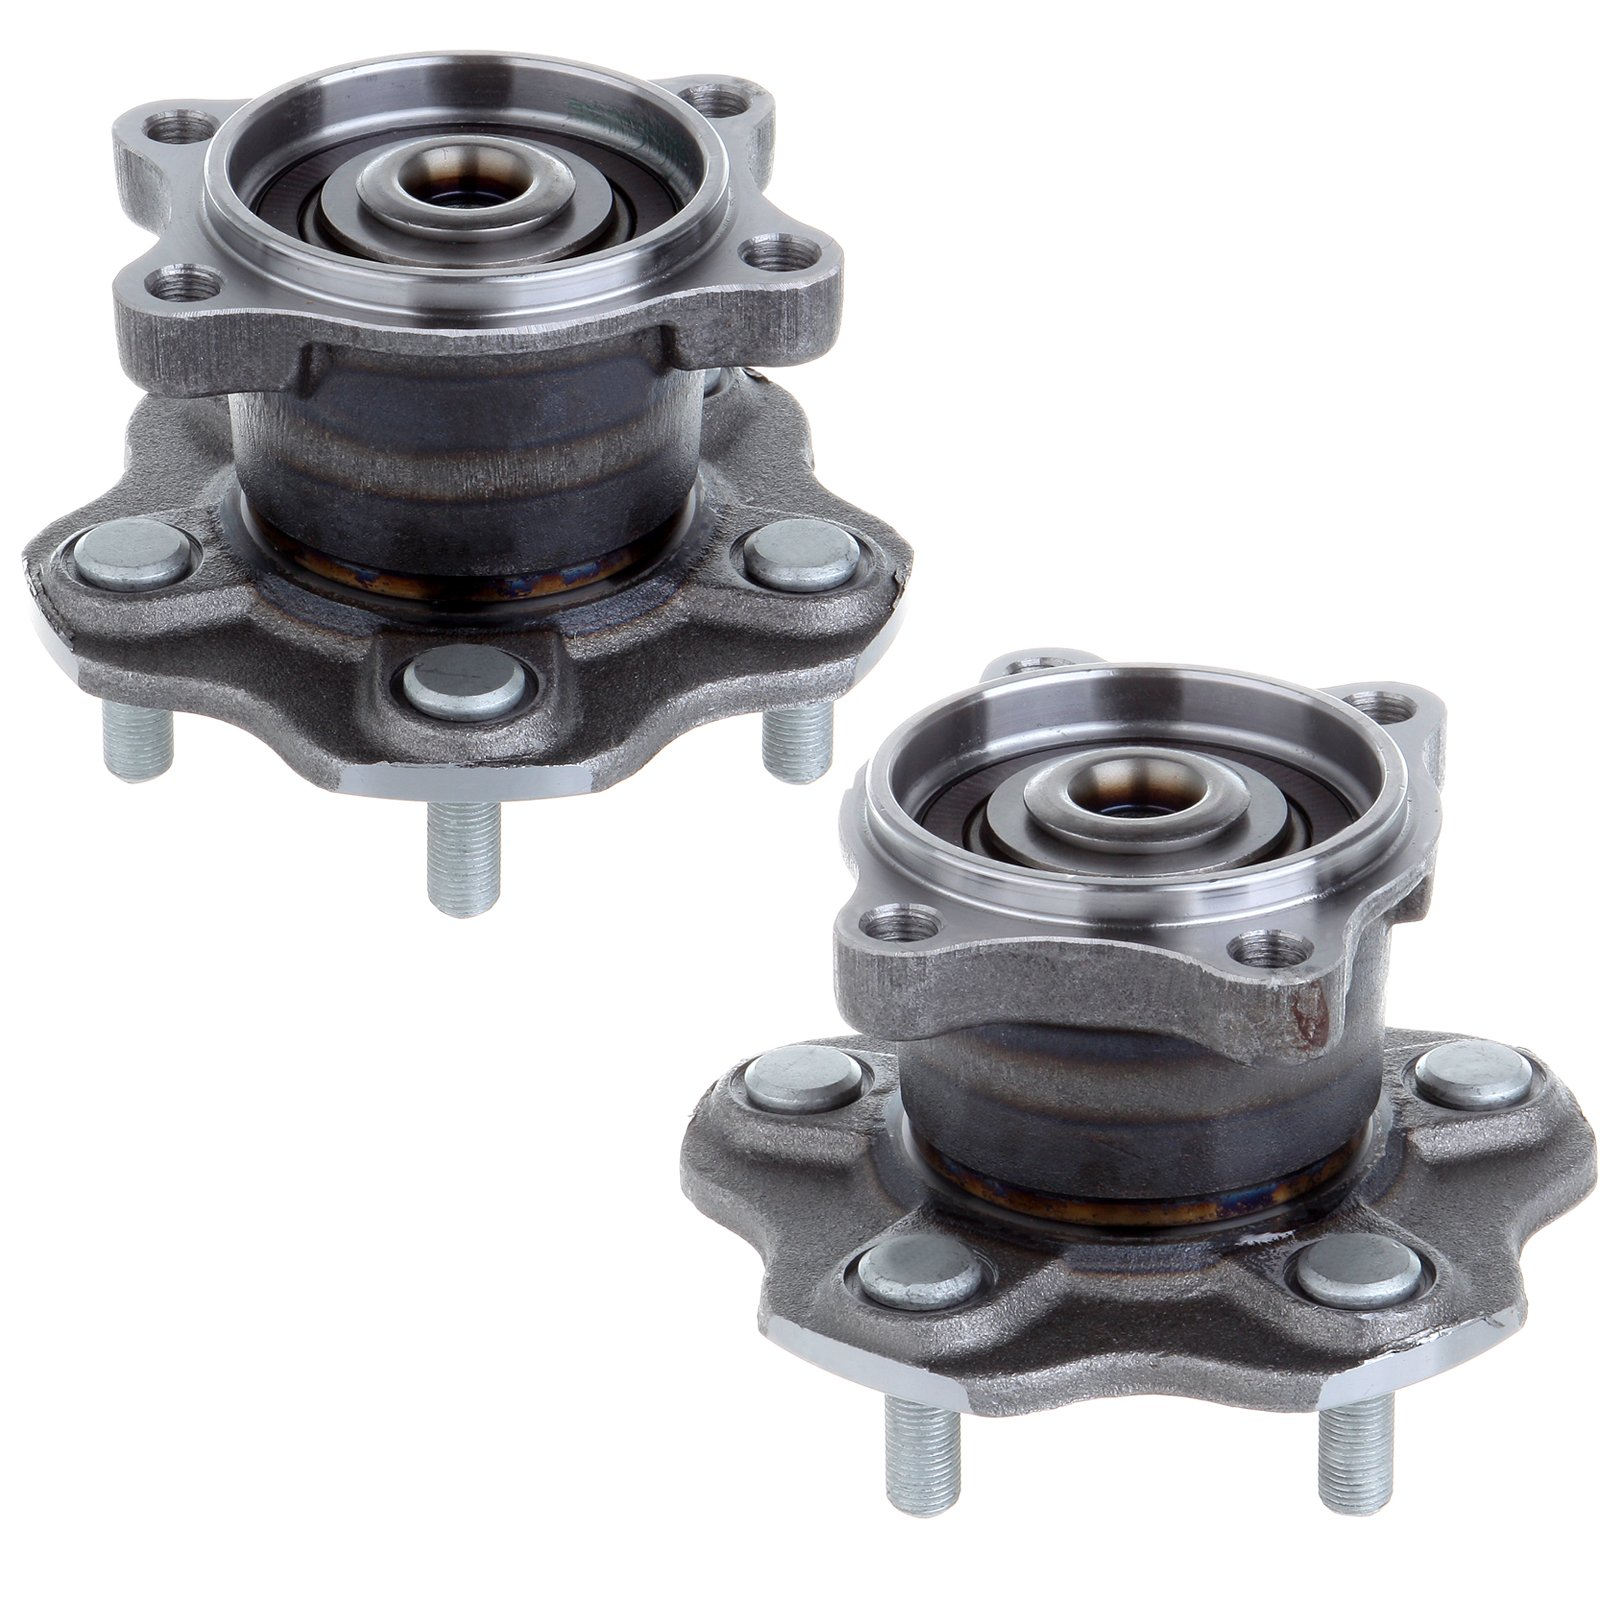 ECCPP Pair of 2 Rear Left and Right Wheel Hub Bearing Assembly Units for a 02-06 Nissan Altima 5 Lug by ECCPP